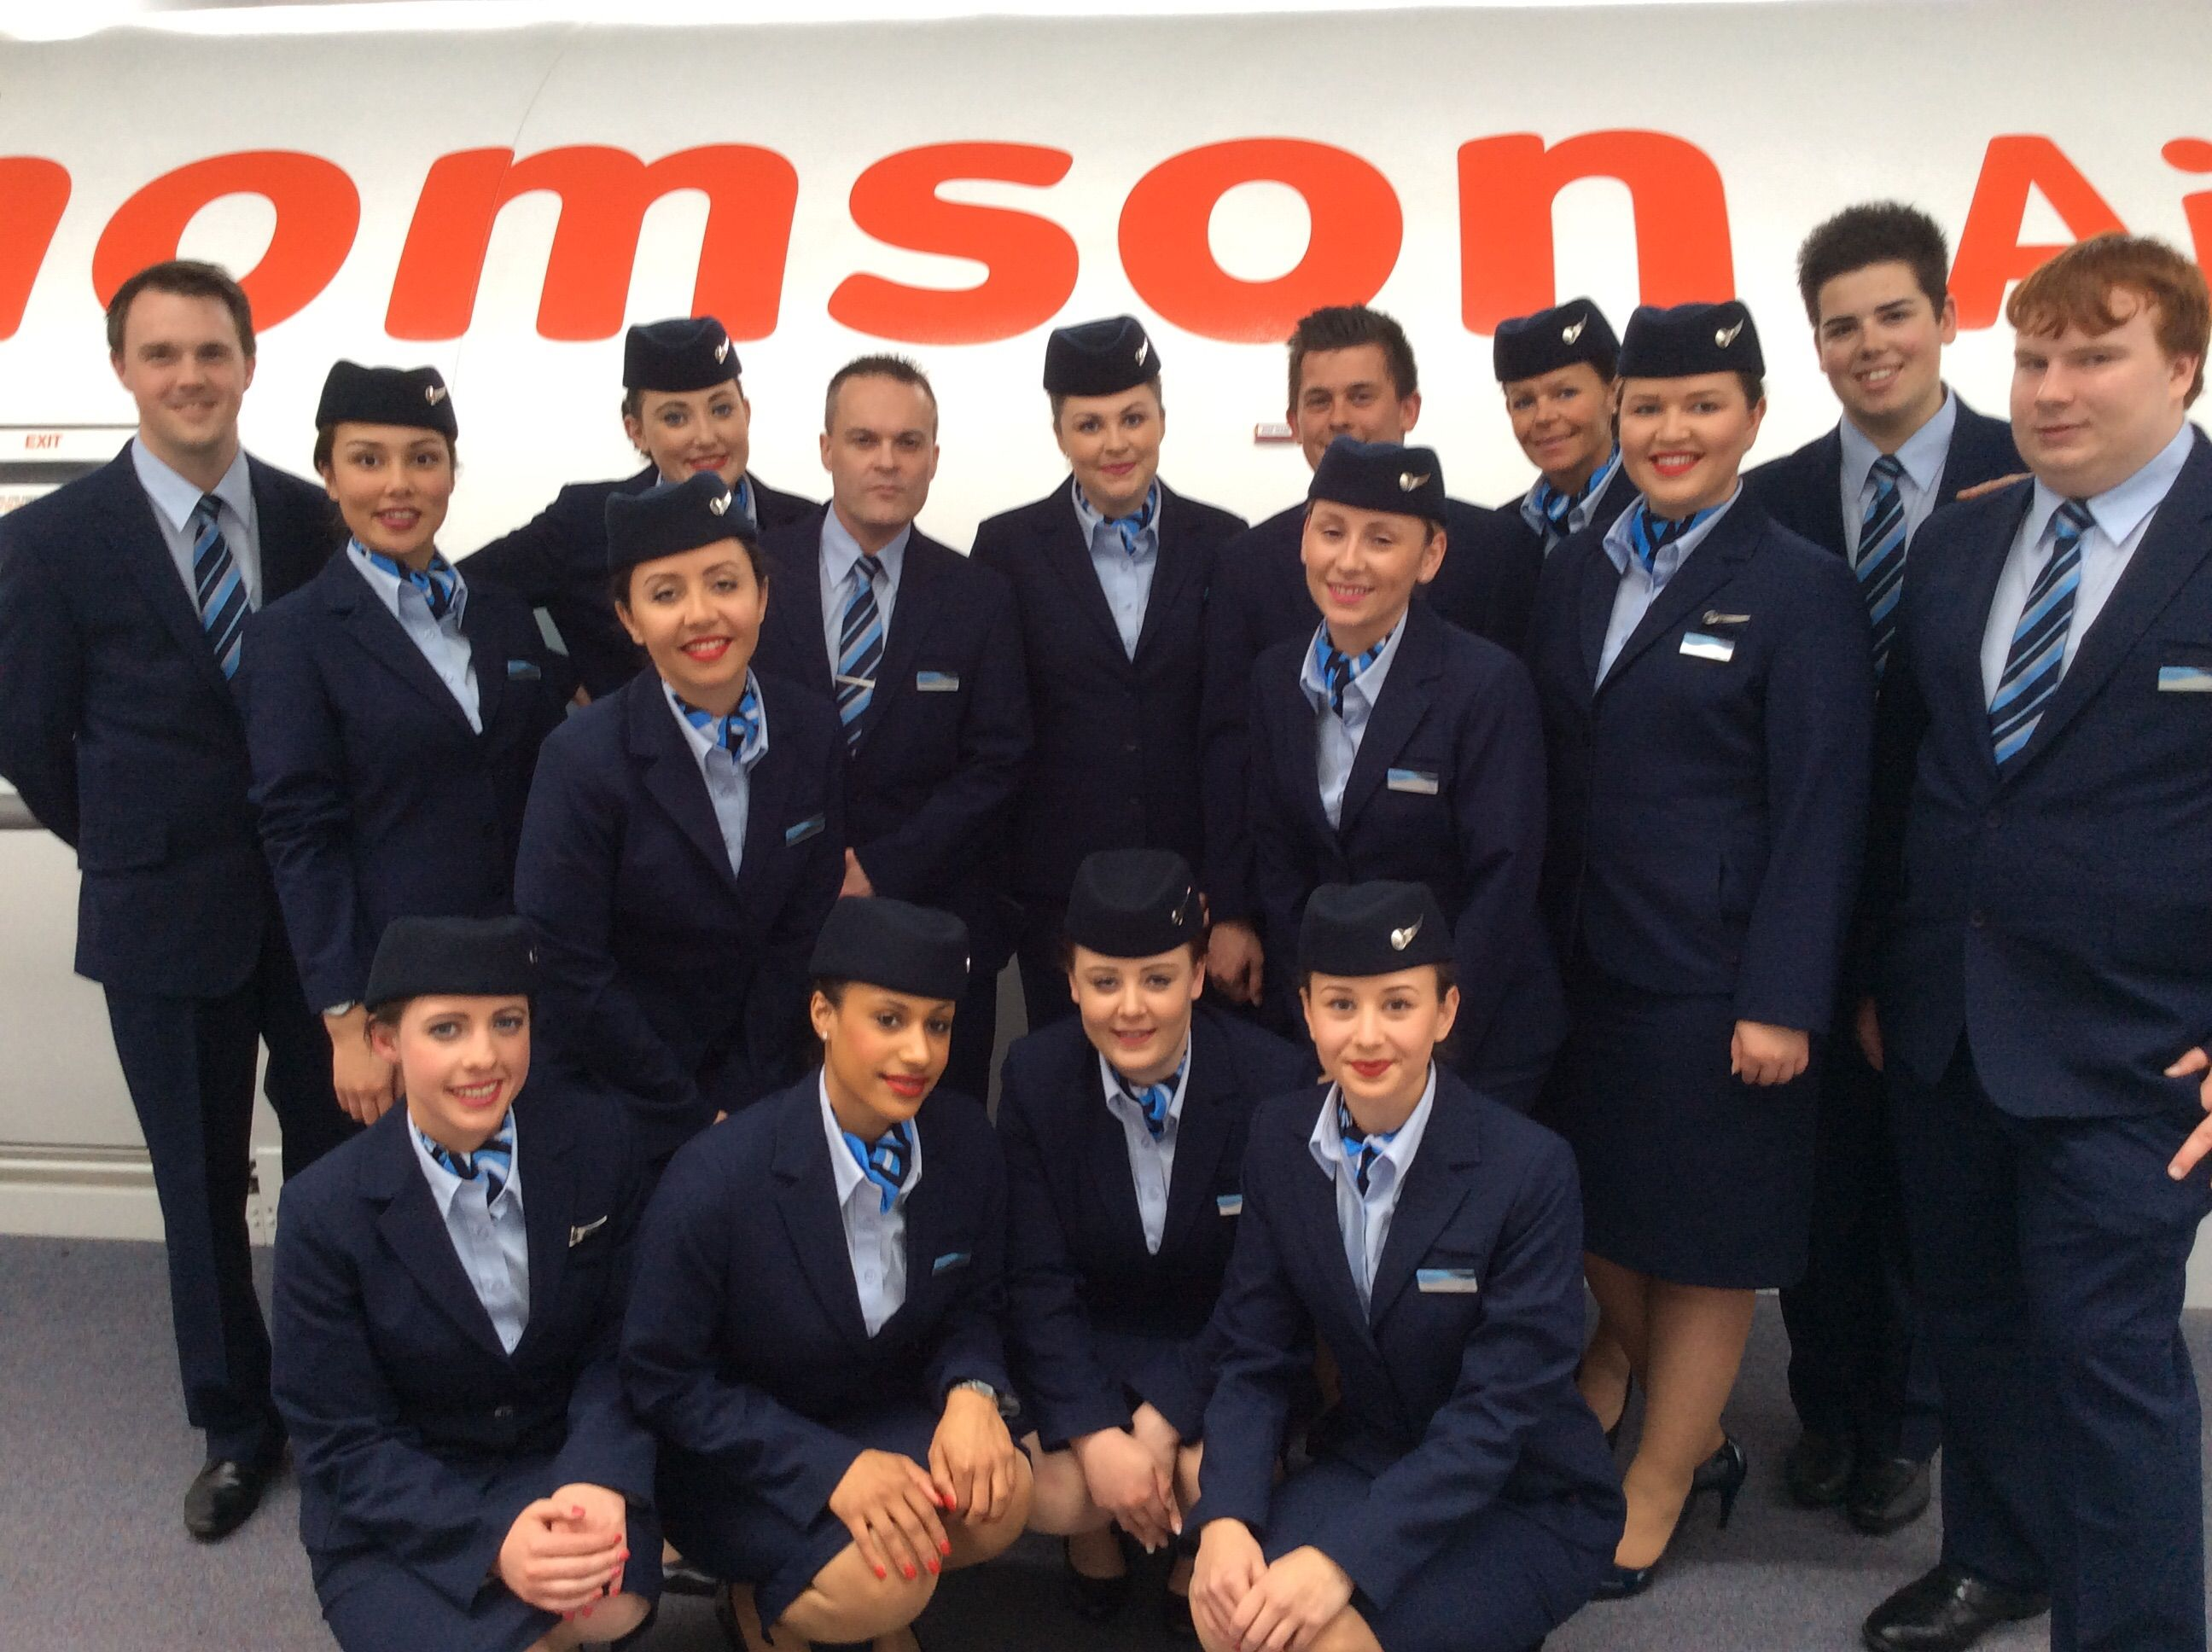 our new starters lgw cabin crew looking smart in